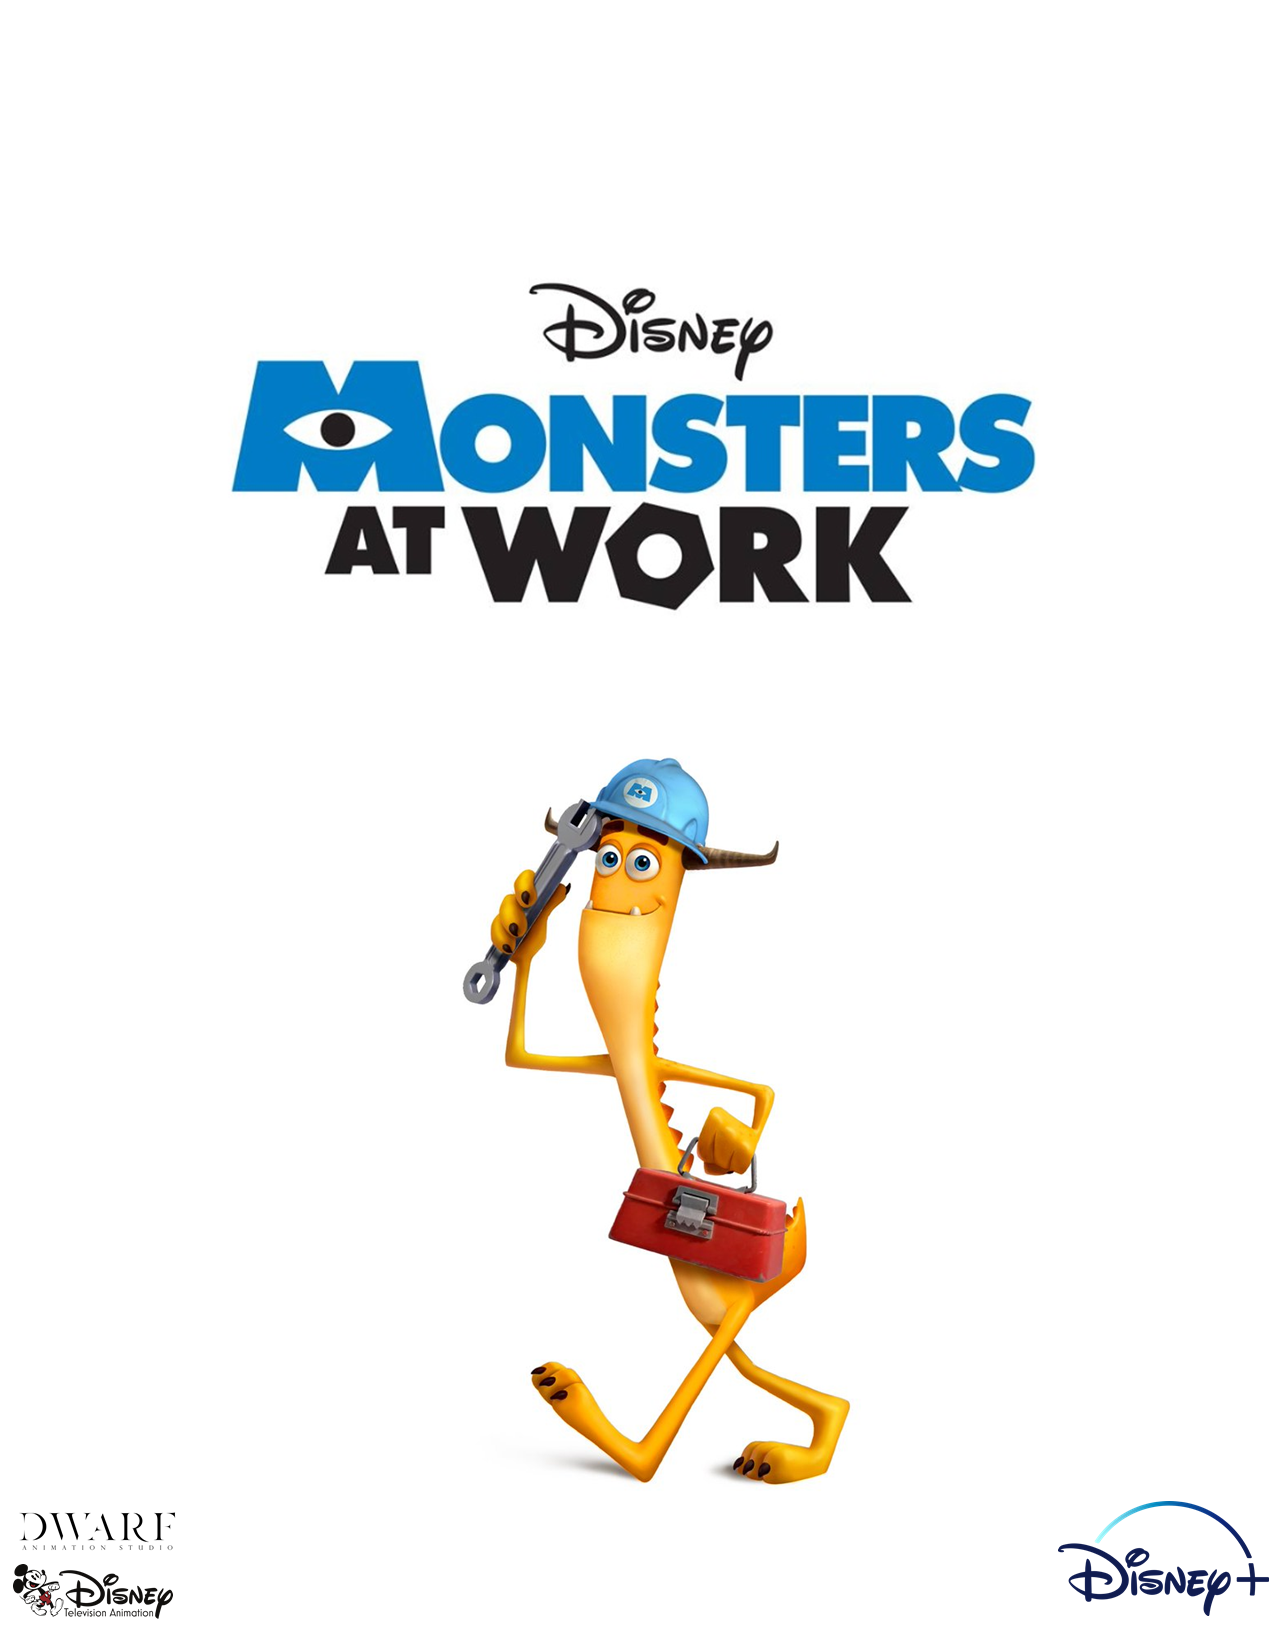 Monsters at Work plakát Disney seriál.png